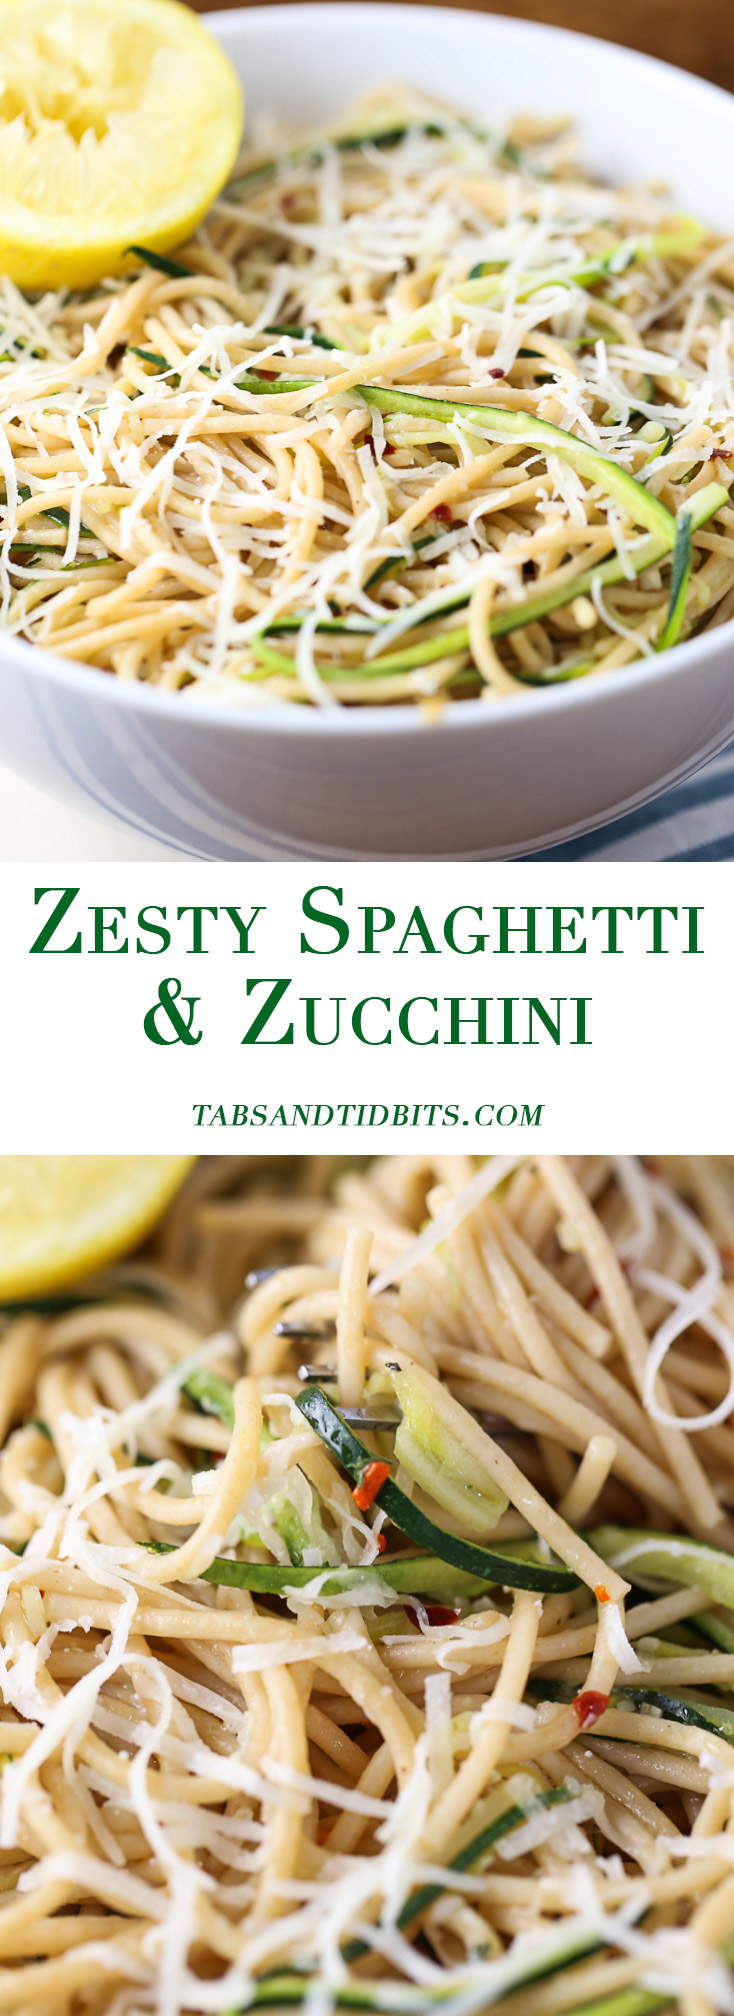 Zesty Spaghetti & Zucchini - Whole wheat spaghetti and thin strips of zucchini with garlic, olive oil, fresh lemon juice and a hint spice from red pepper flakes.